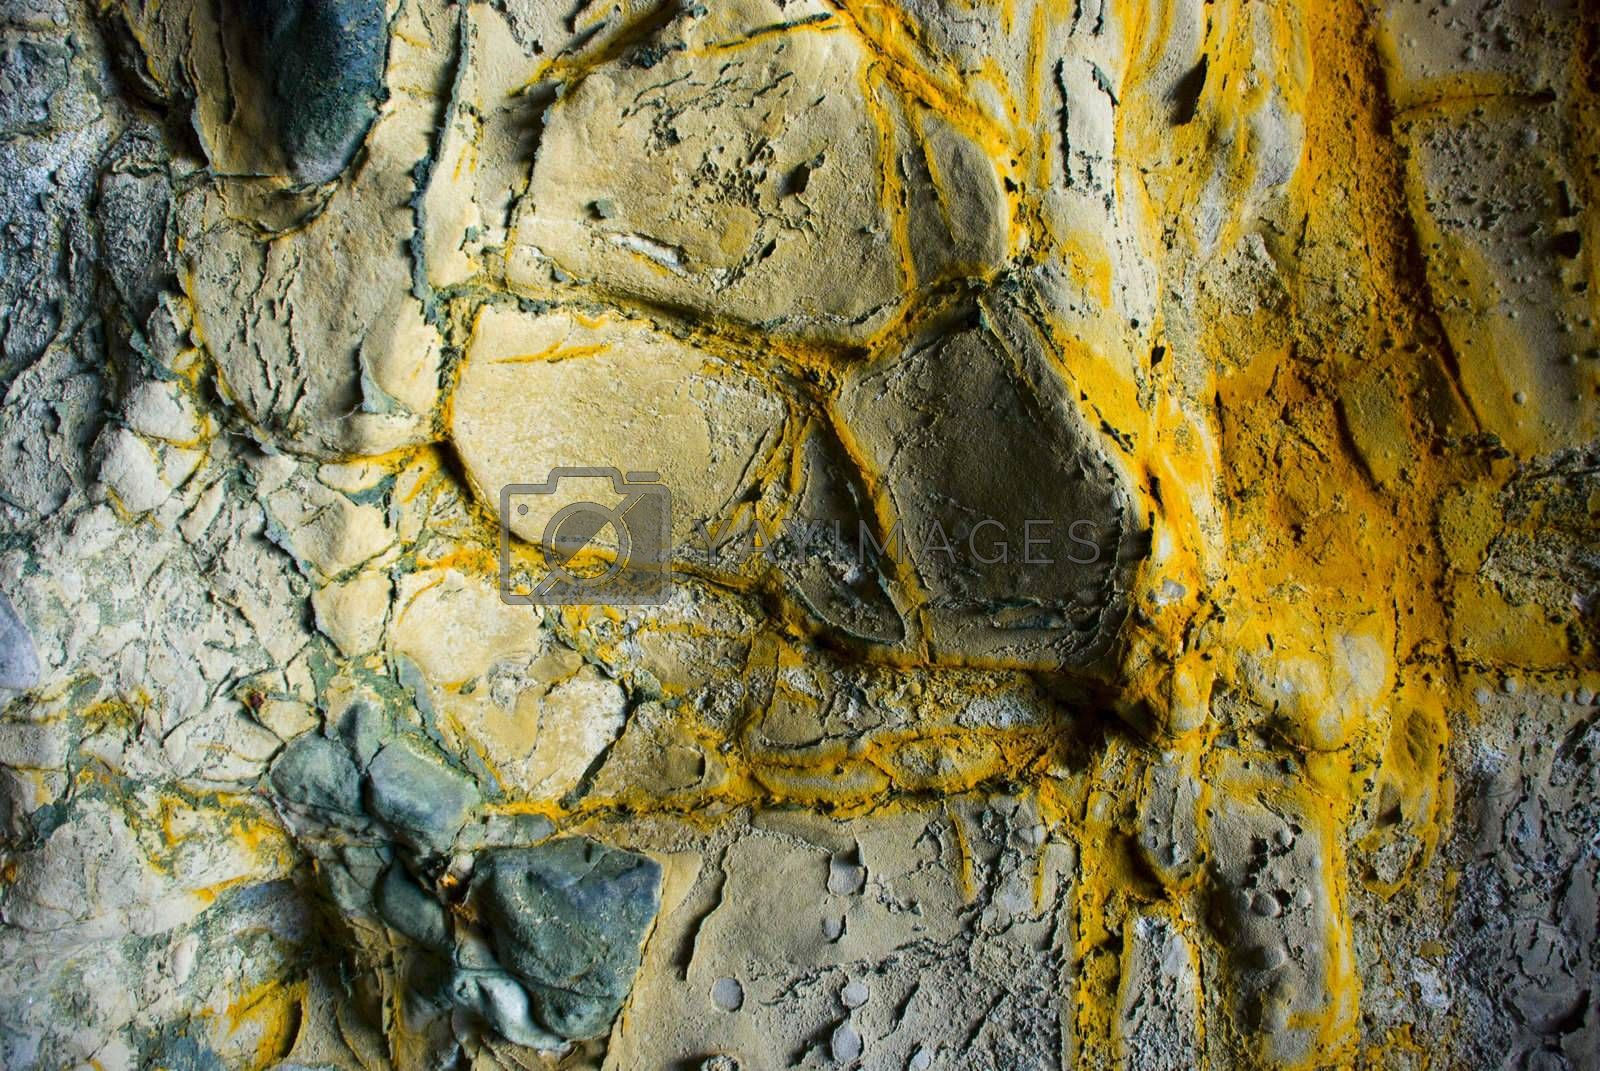 Yellow minerals on a rock formation